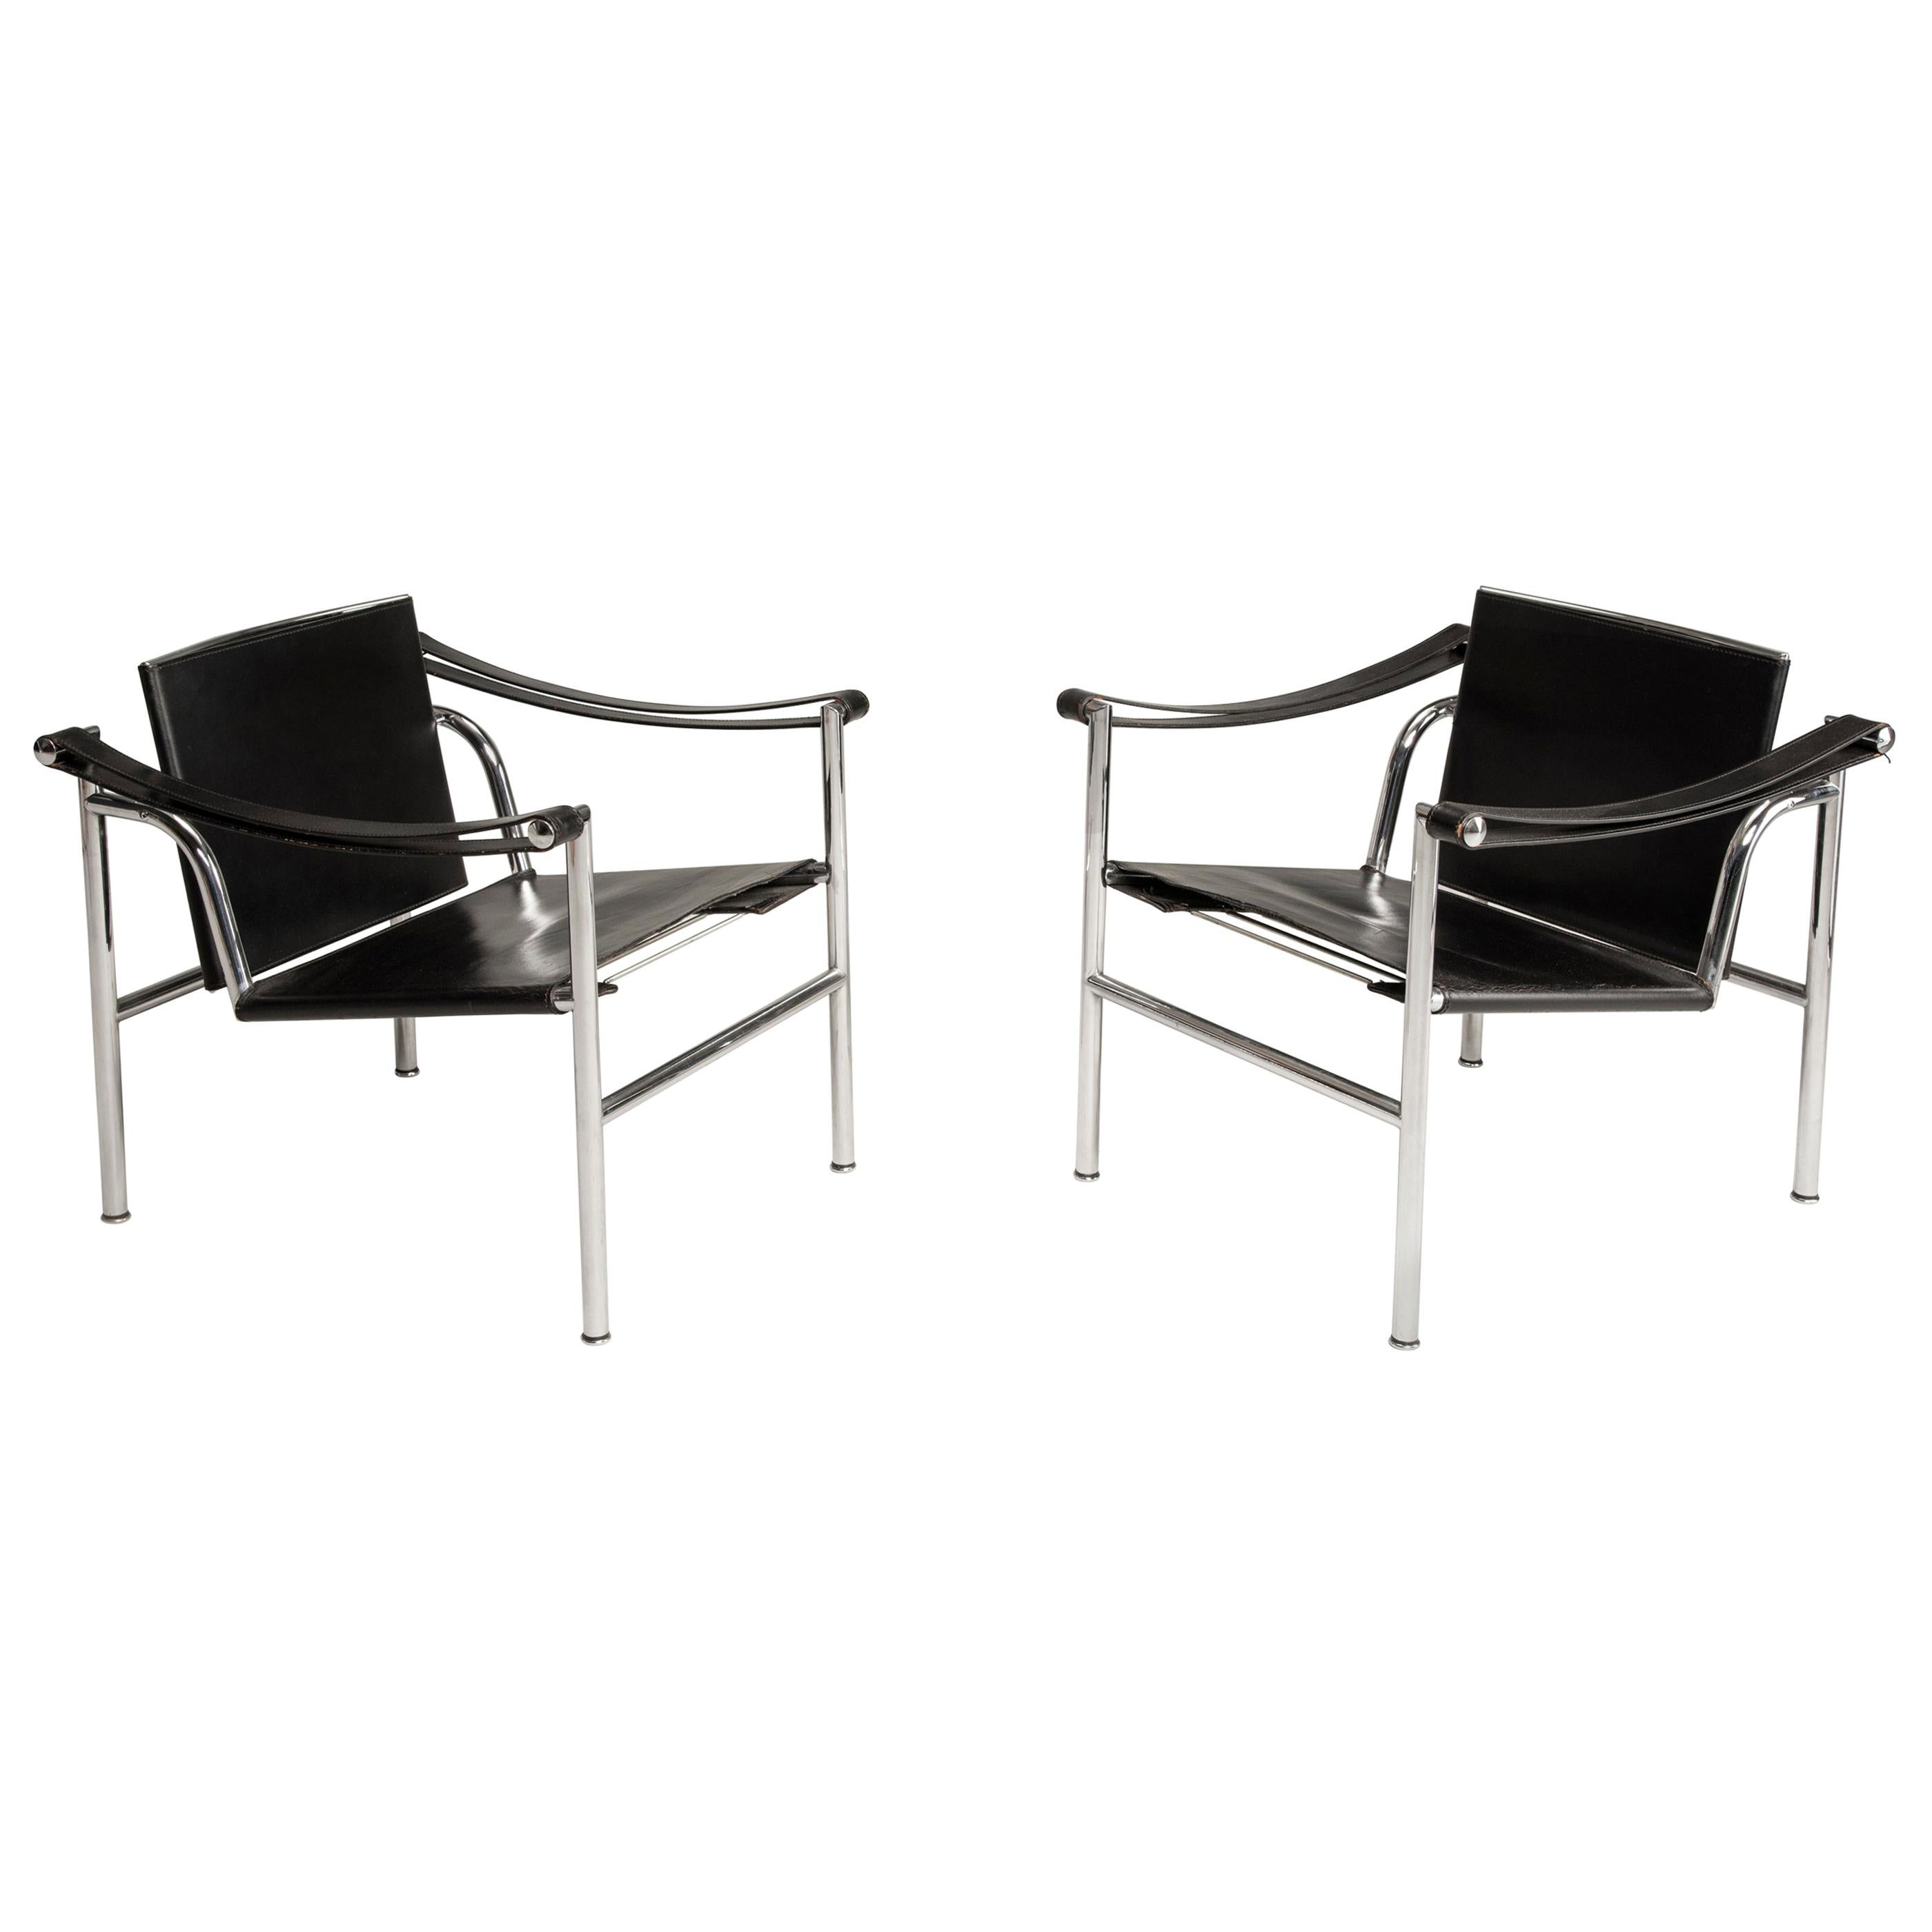 Le Corbusier Numbered Steel and Black Leather LC1 Chairs for Cassina, 1970s